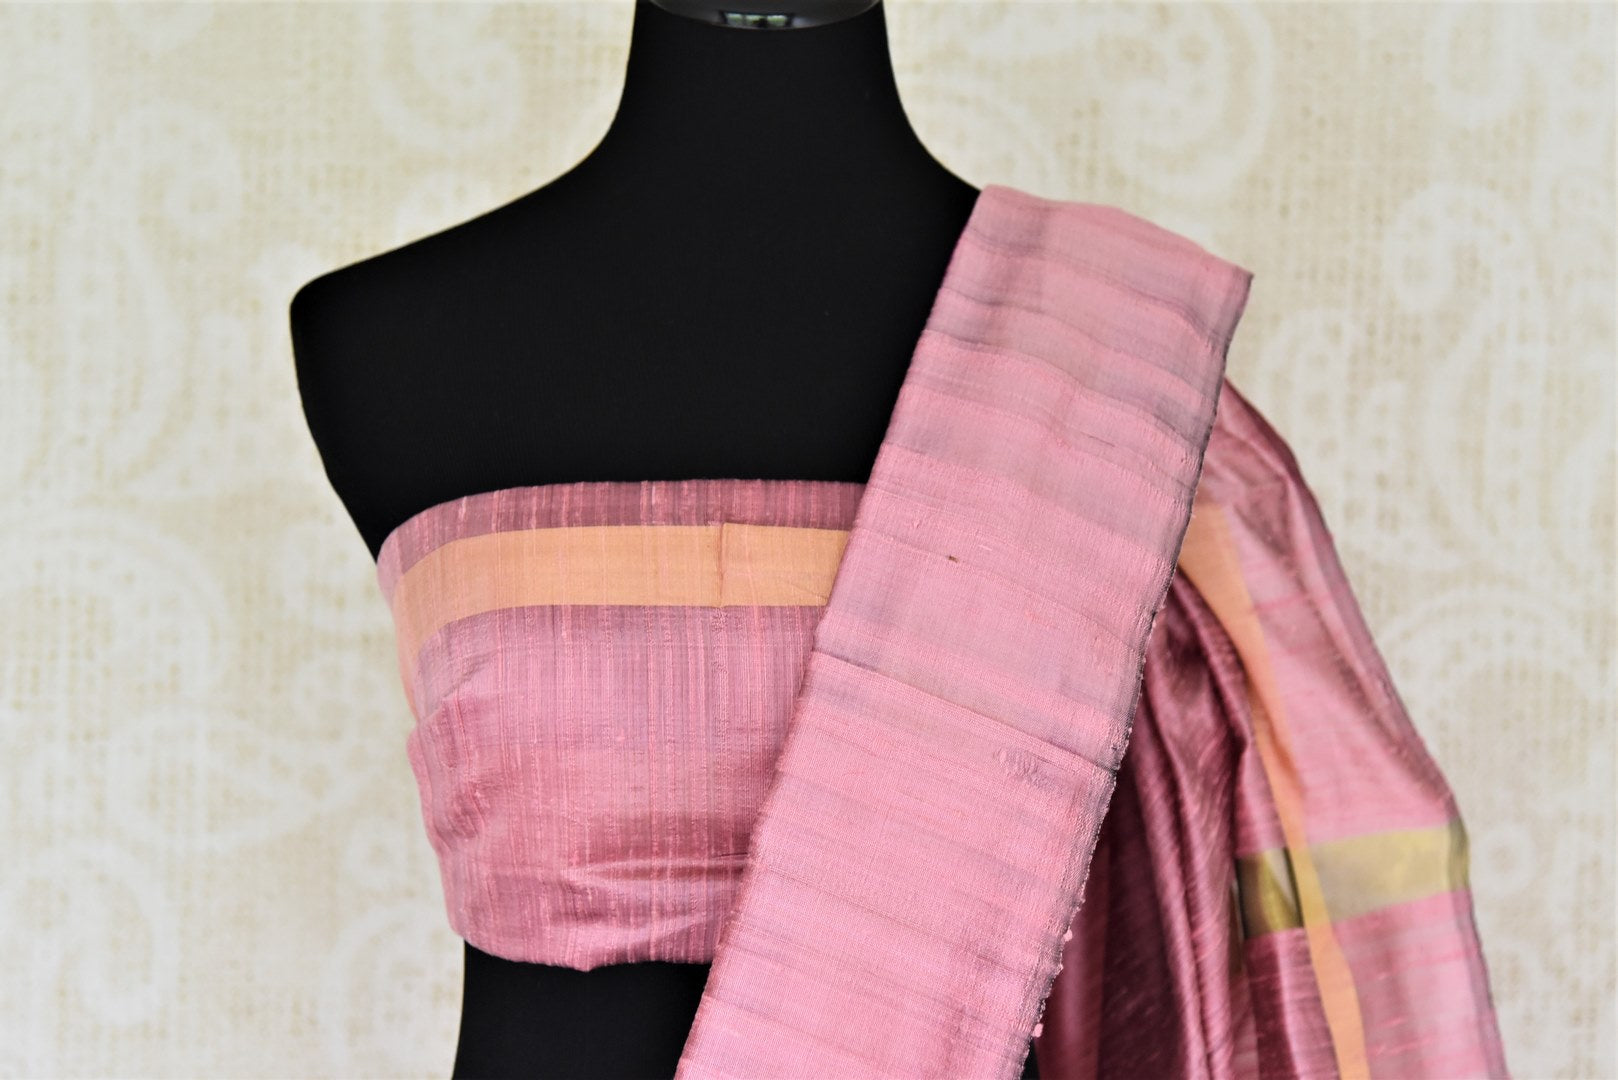 Buy bright magenta tussar dupion silk sari online in USA with mauve temple border. Shine in beautiful Indian designer silk saris available at Pure Elegance Indian clothing store for women in USA or shop online.-blouse pallu